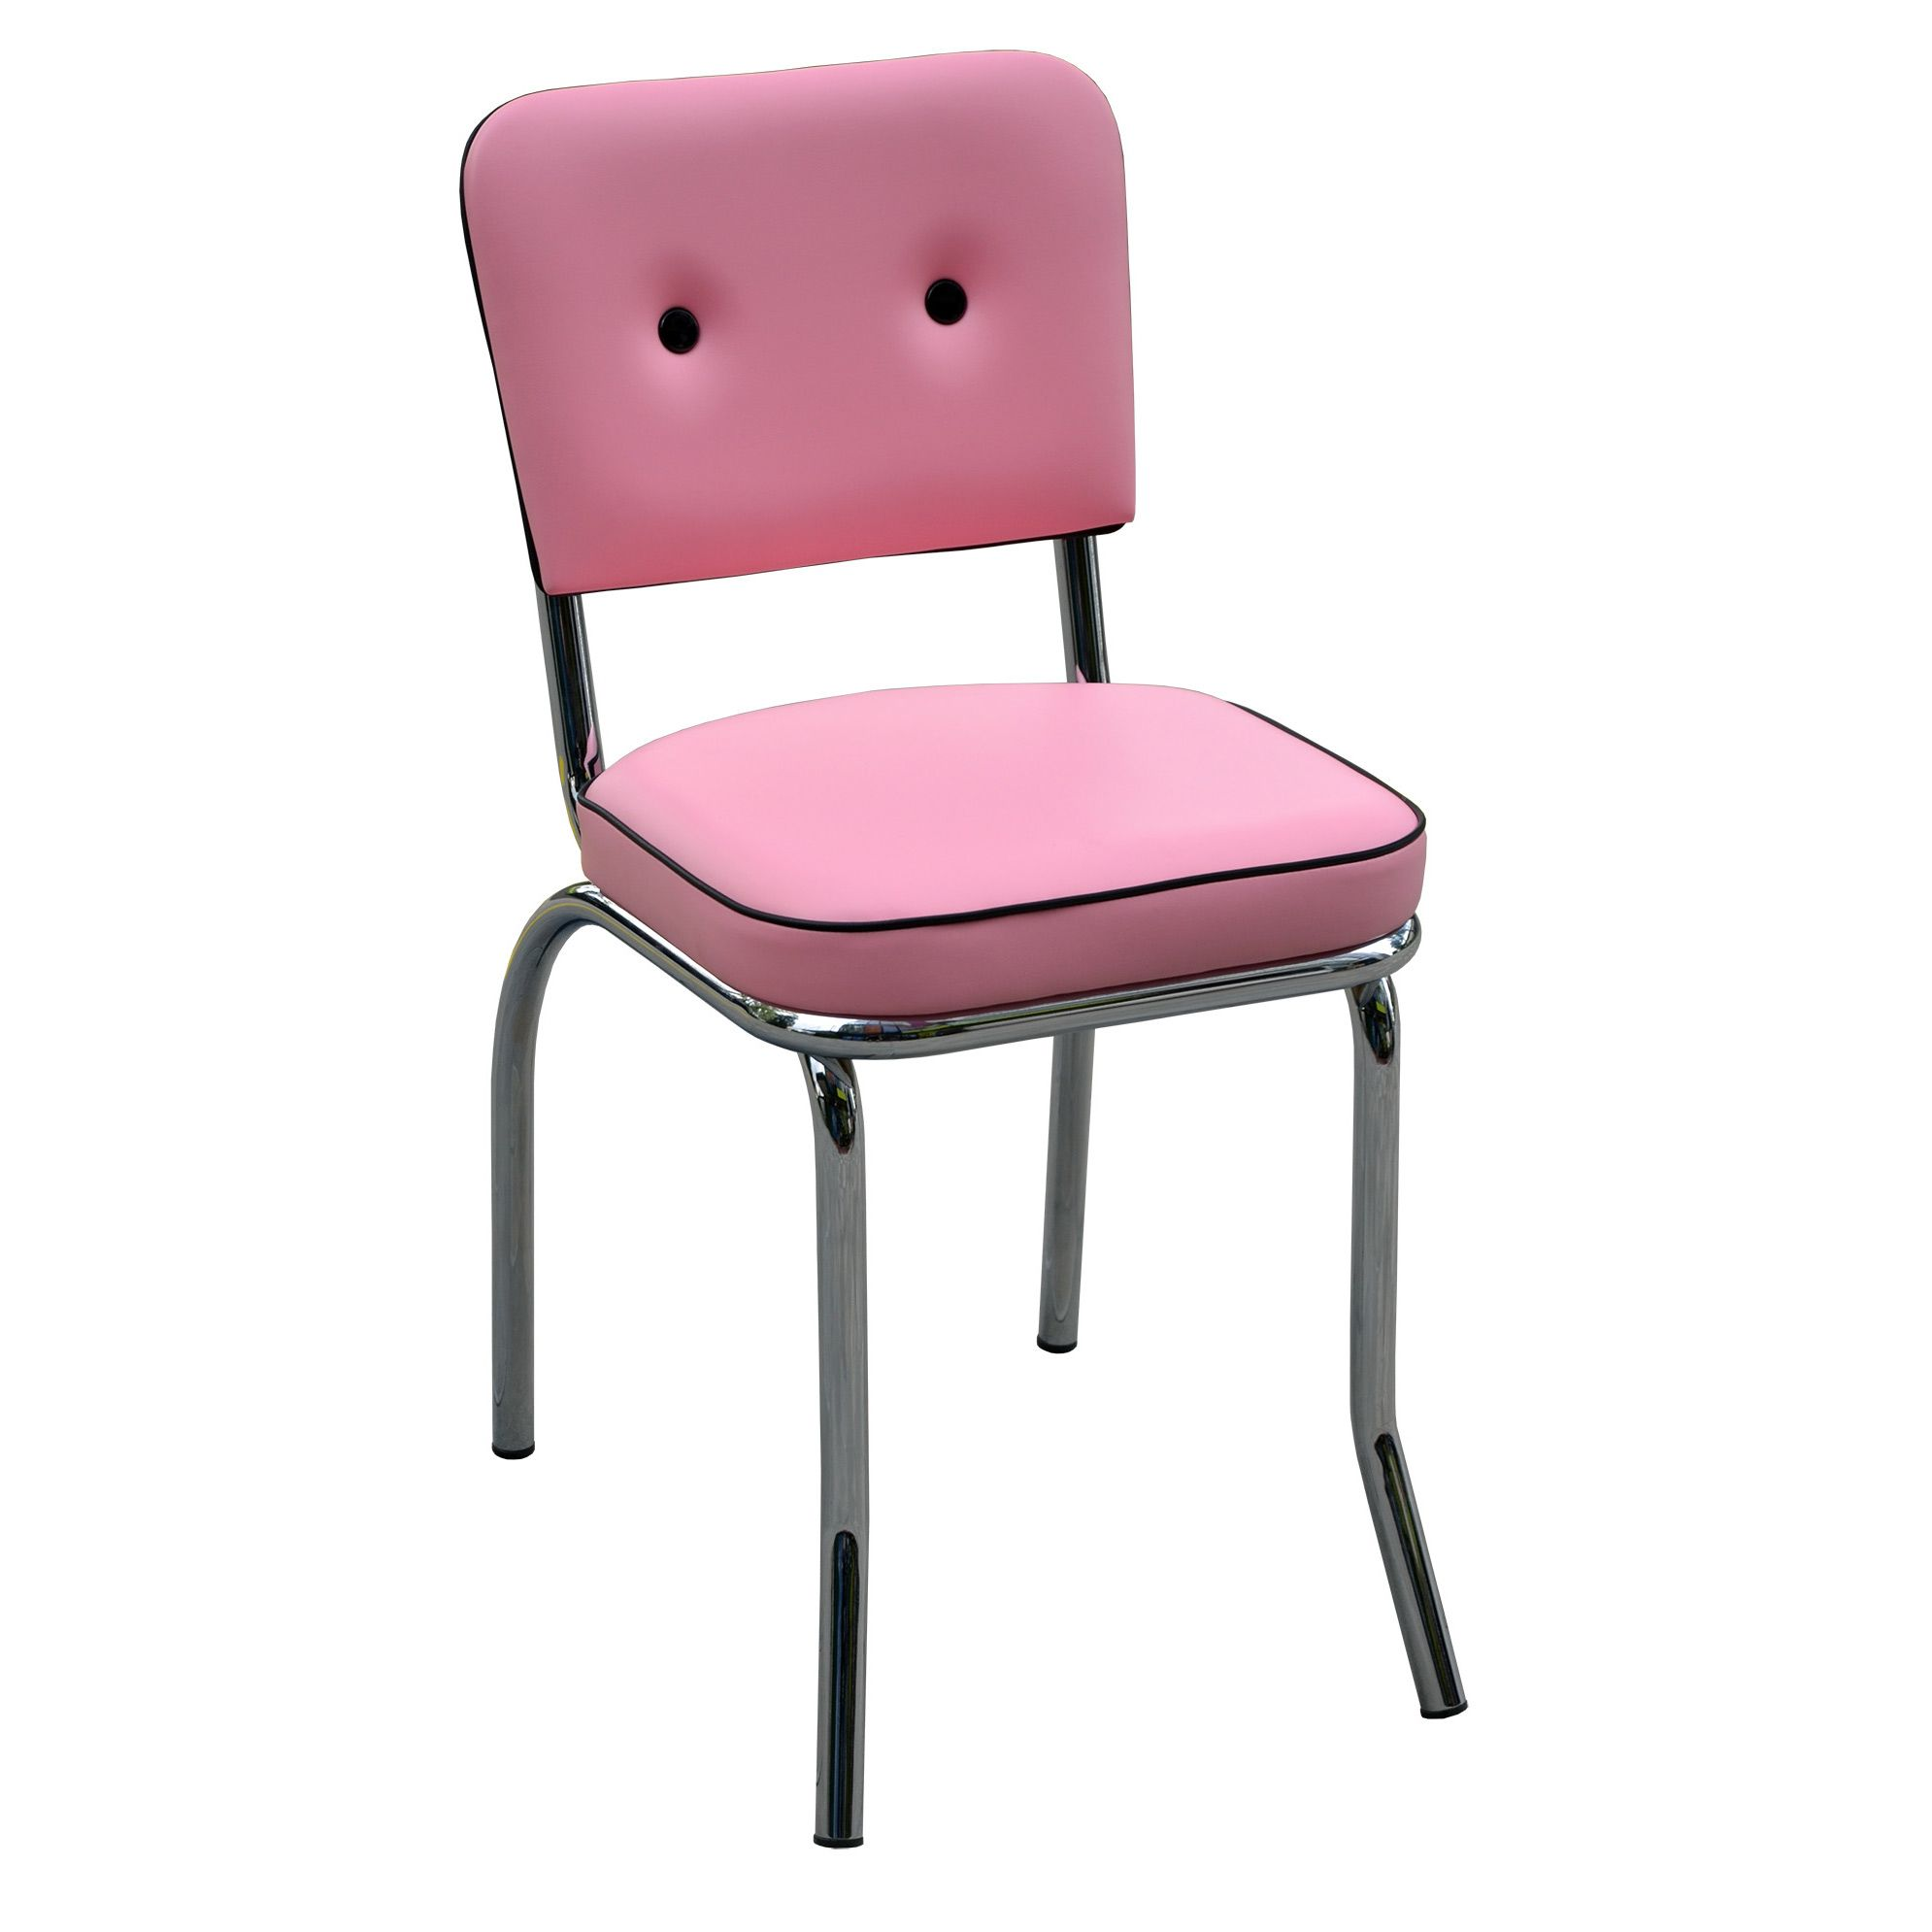 American 50's diner chair